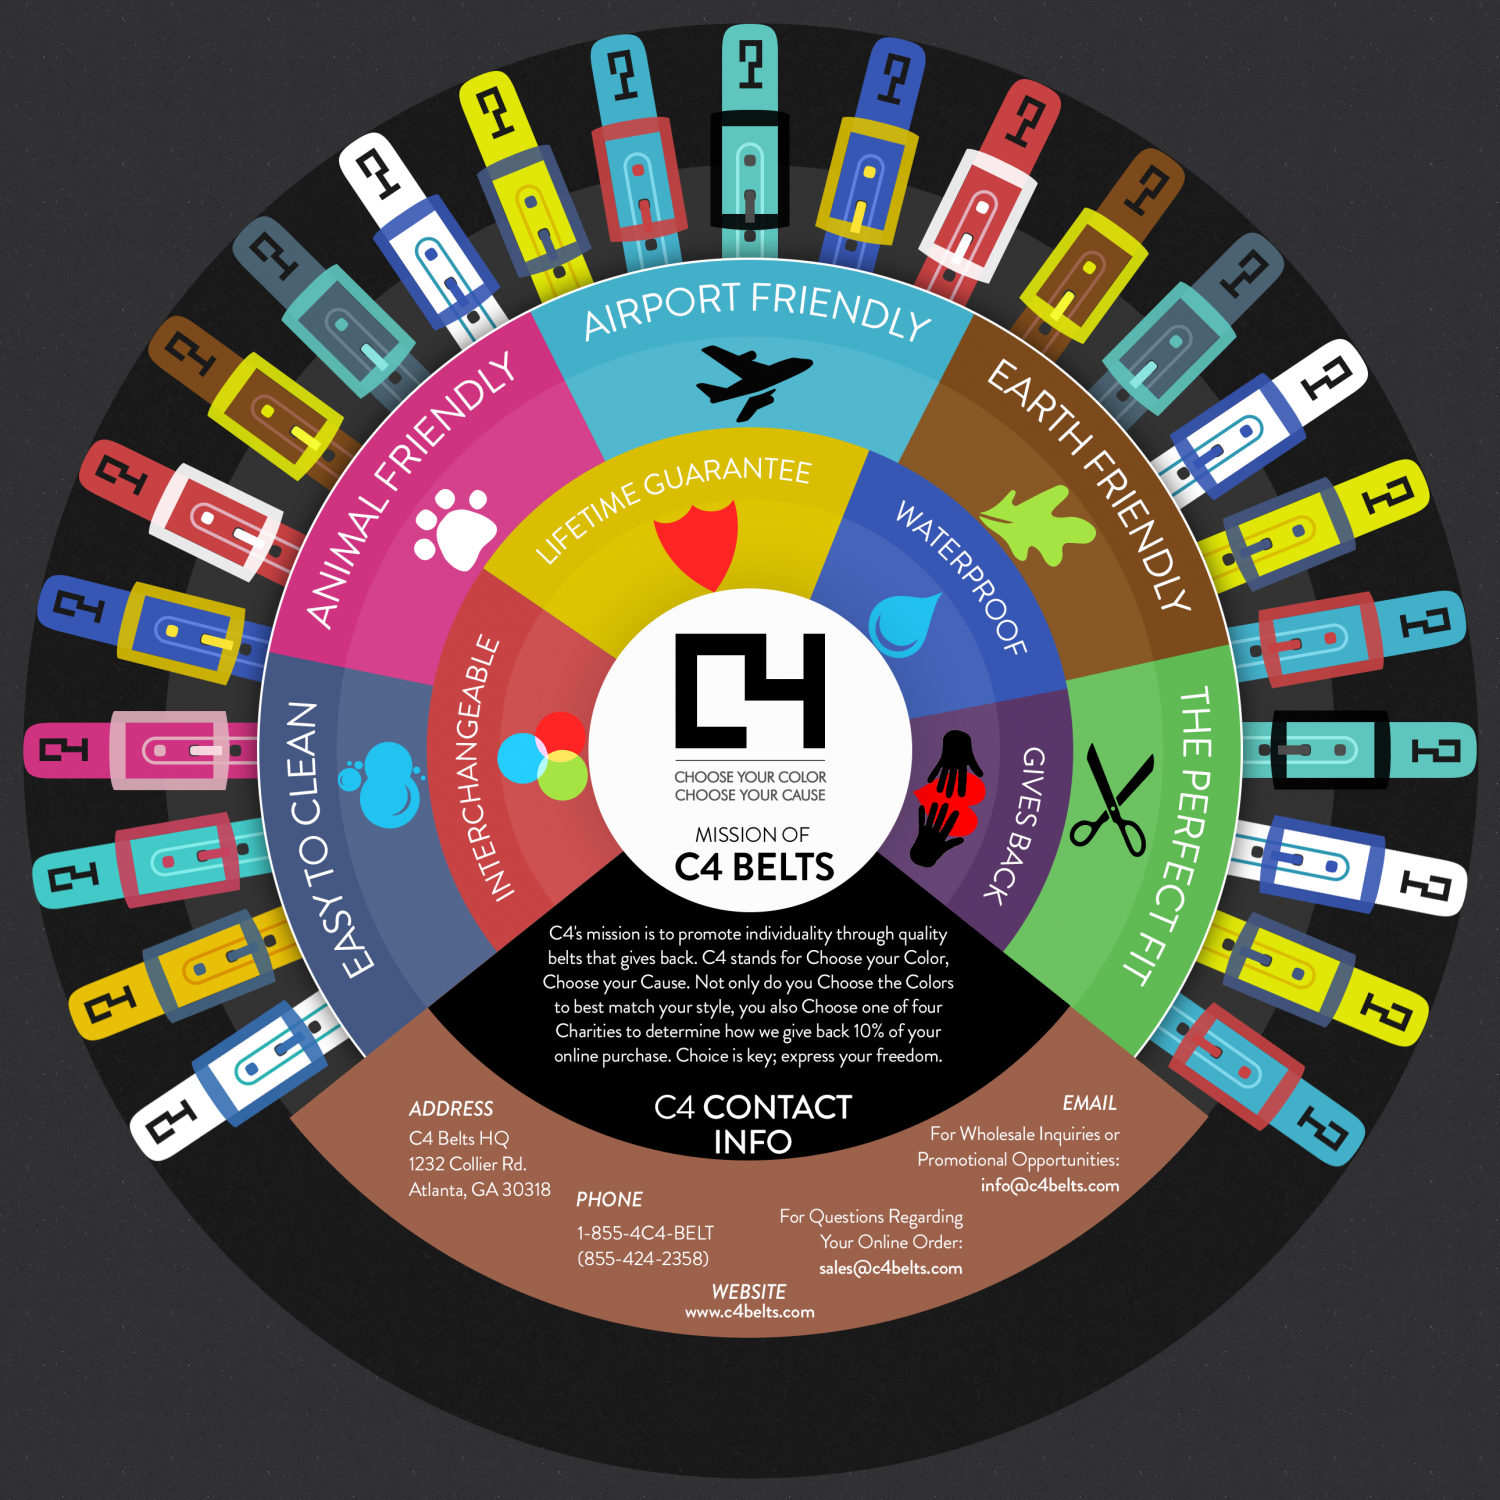 C4Belts:C4 stands for Choose your Color, Choose your Cause Infographic